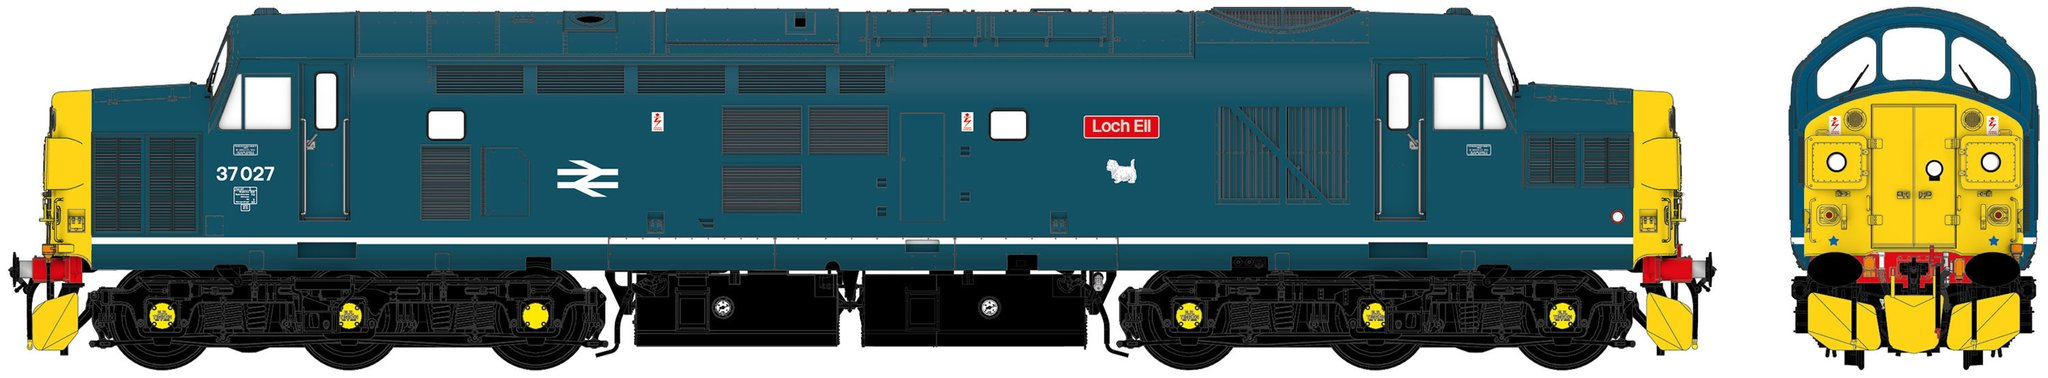 Accurascale Class 37 - 37027 'Loch Eil' BR Blue With Sound